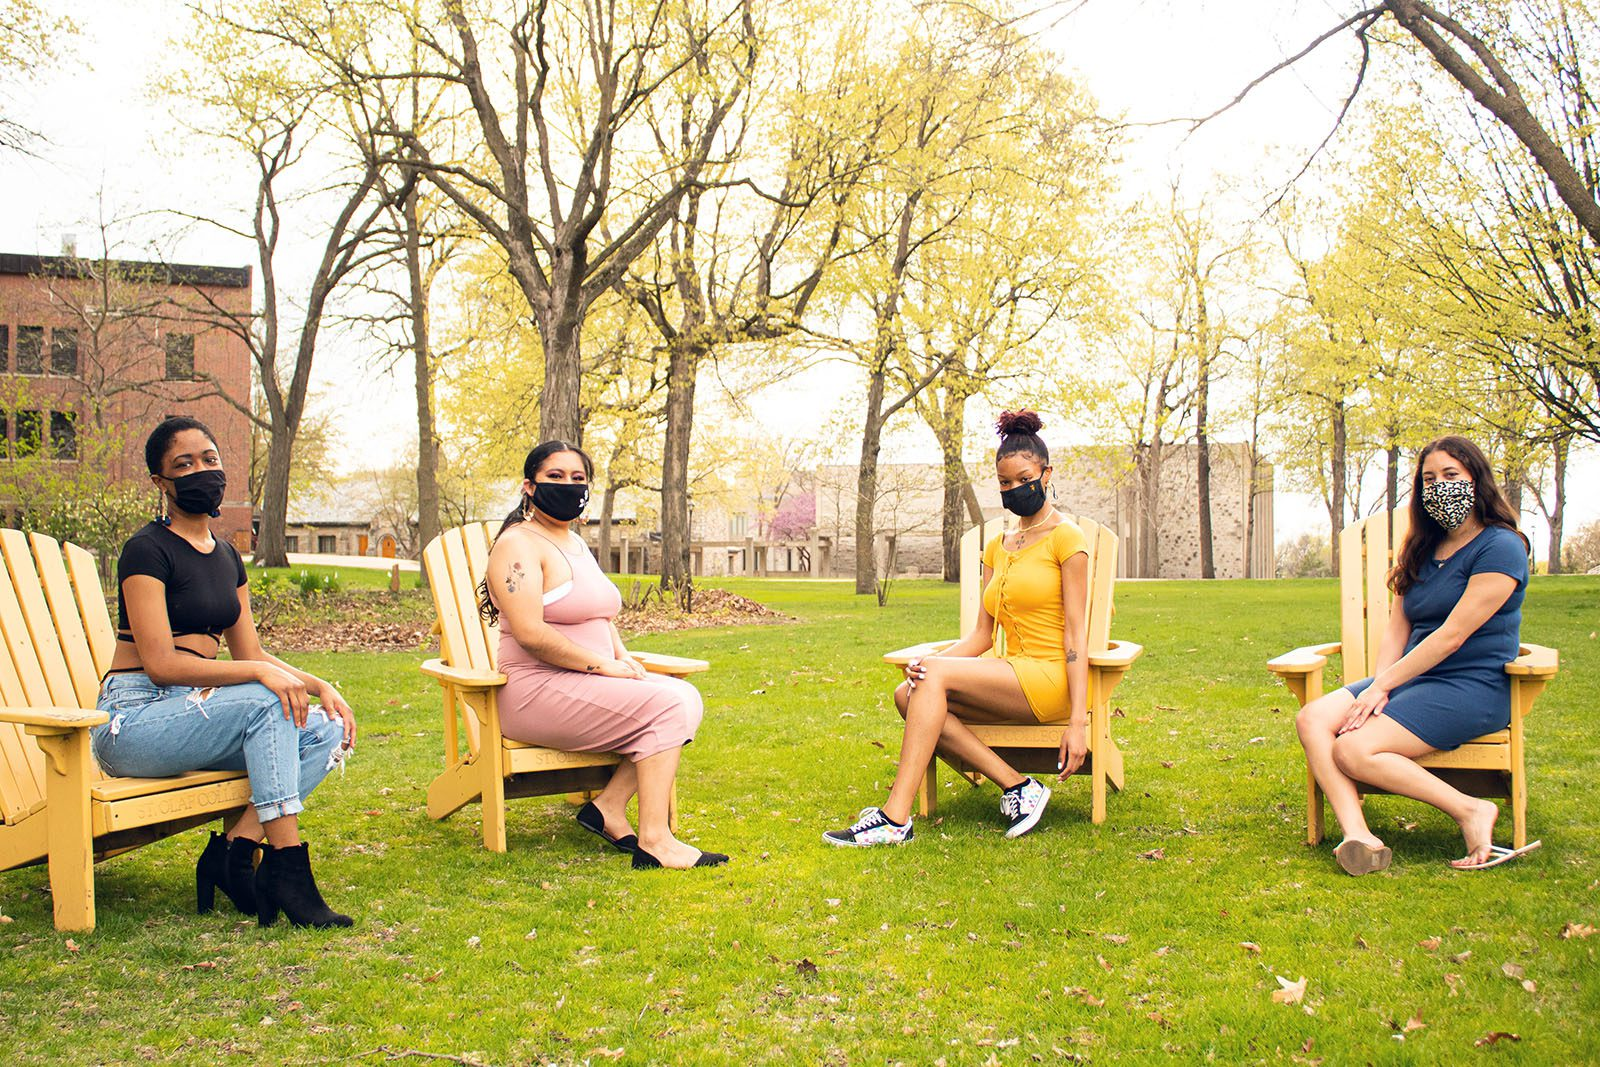 Portrait of (from left to right) Sophia Evans, Joanna Perez, Tija Atkins, and Allyvia Garza on adirondack chairs in the grass with a red brick building, a limestone building, and trees in the background.